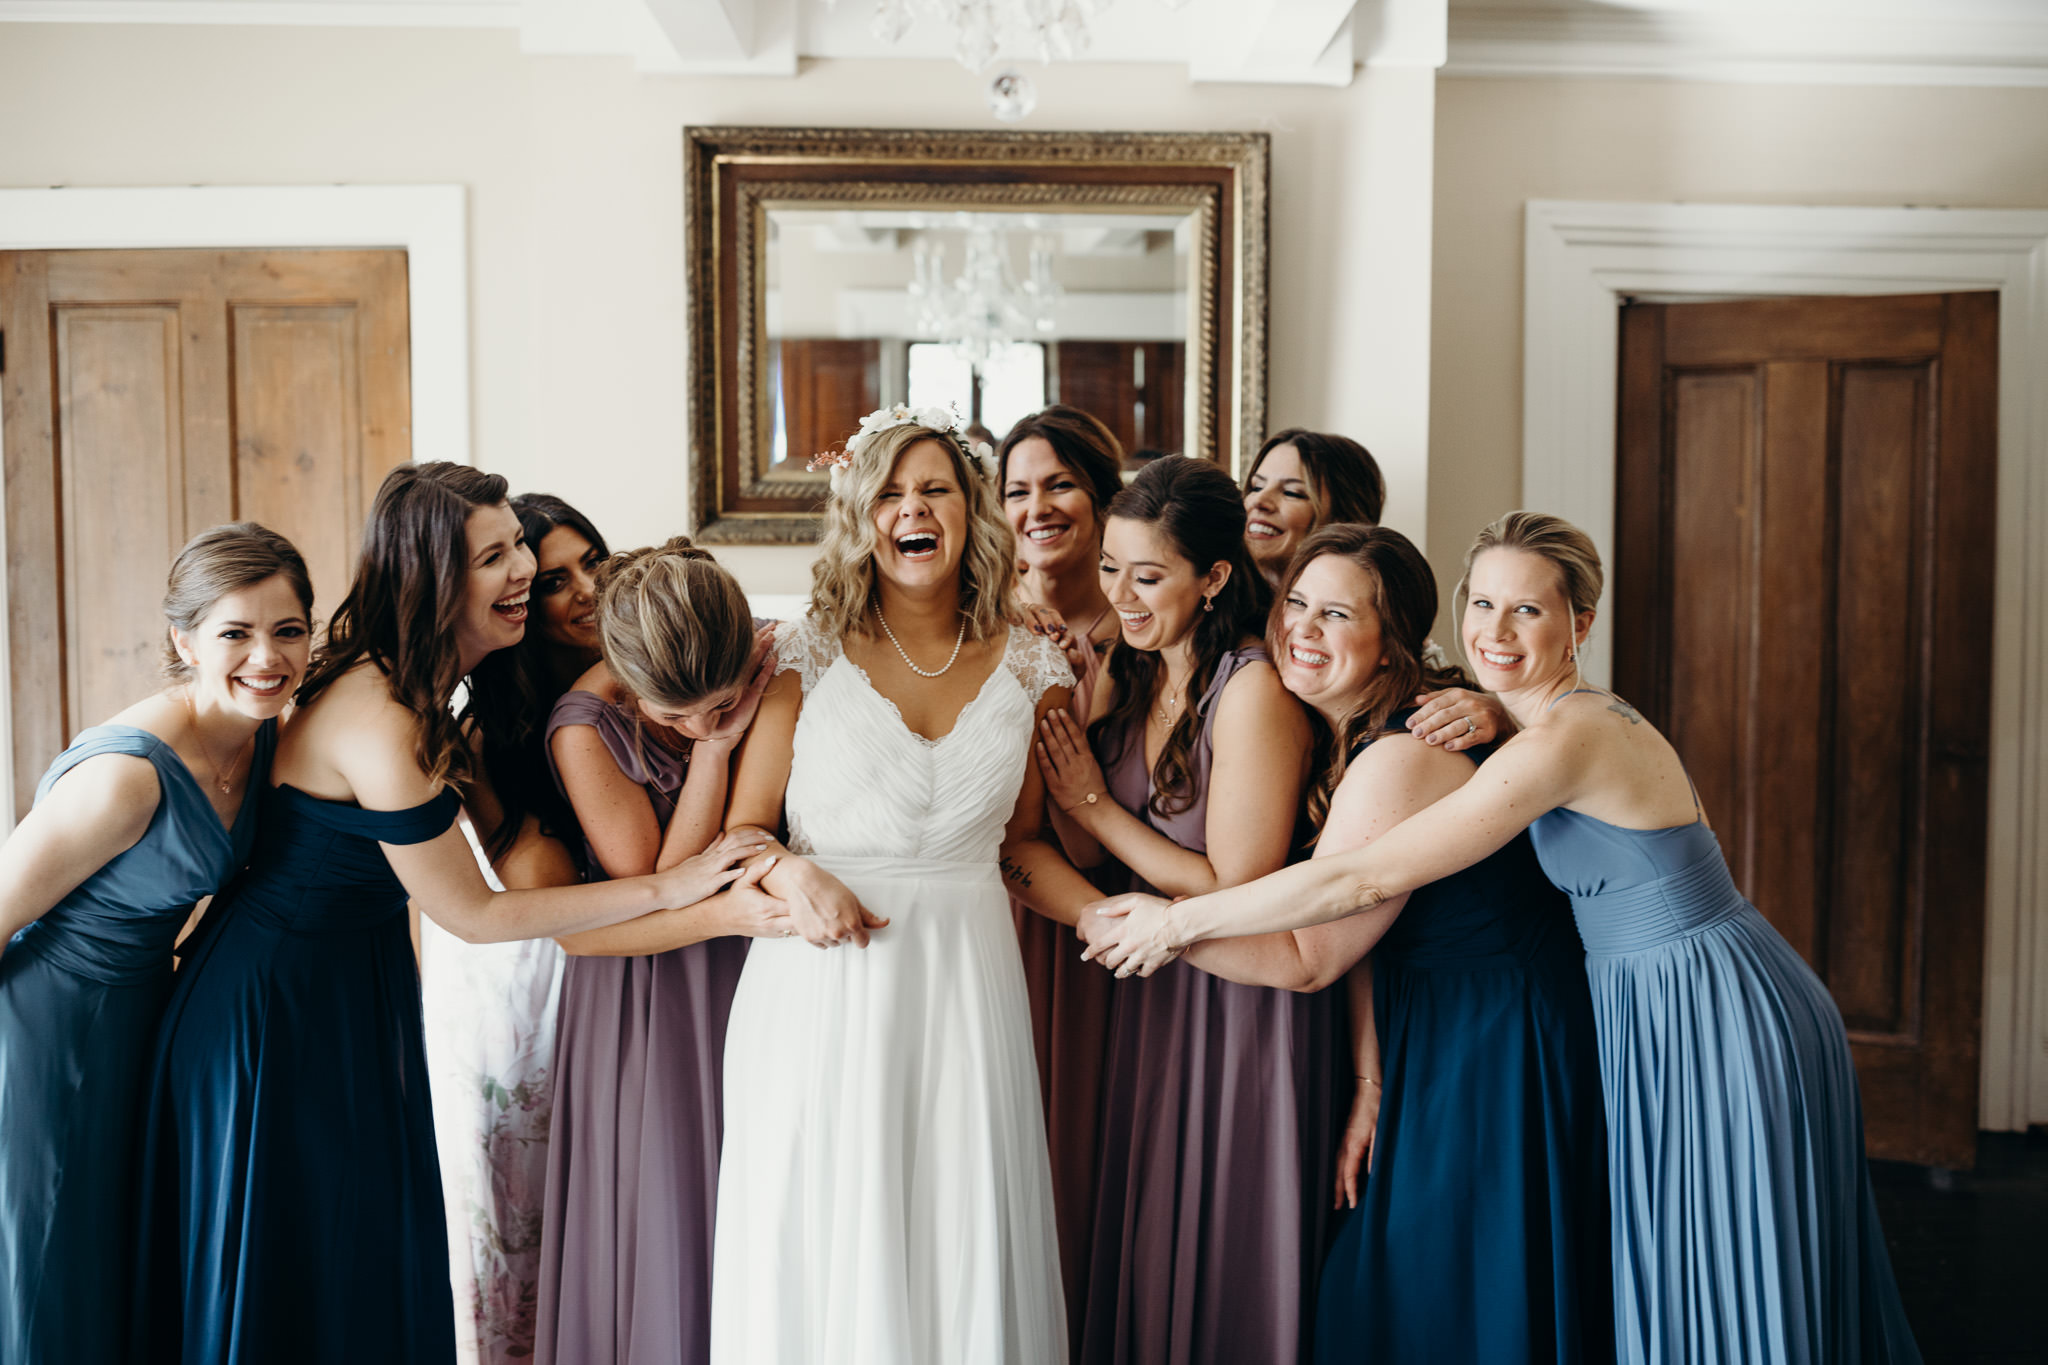 Pastel and Spring Colors bridesmaids dresses at Mansion wedding at The Cool Springs House in Brentwood, Tennessee